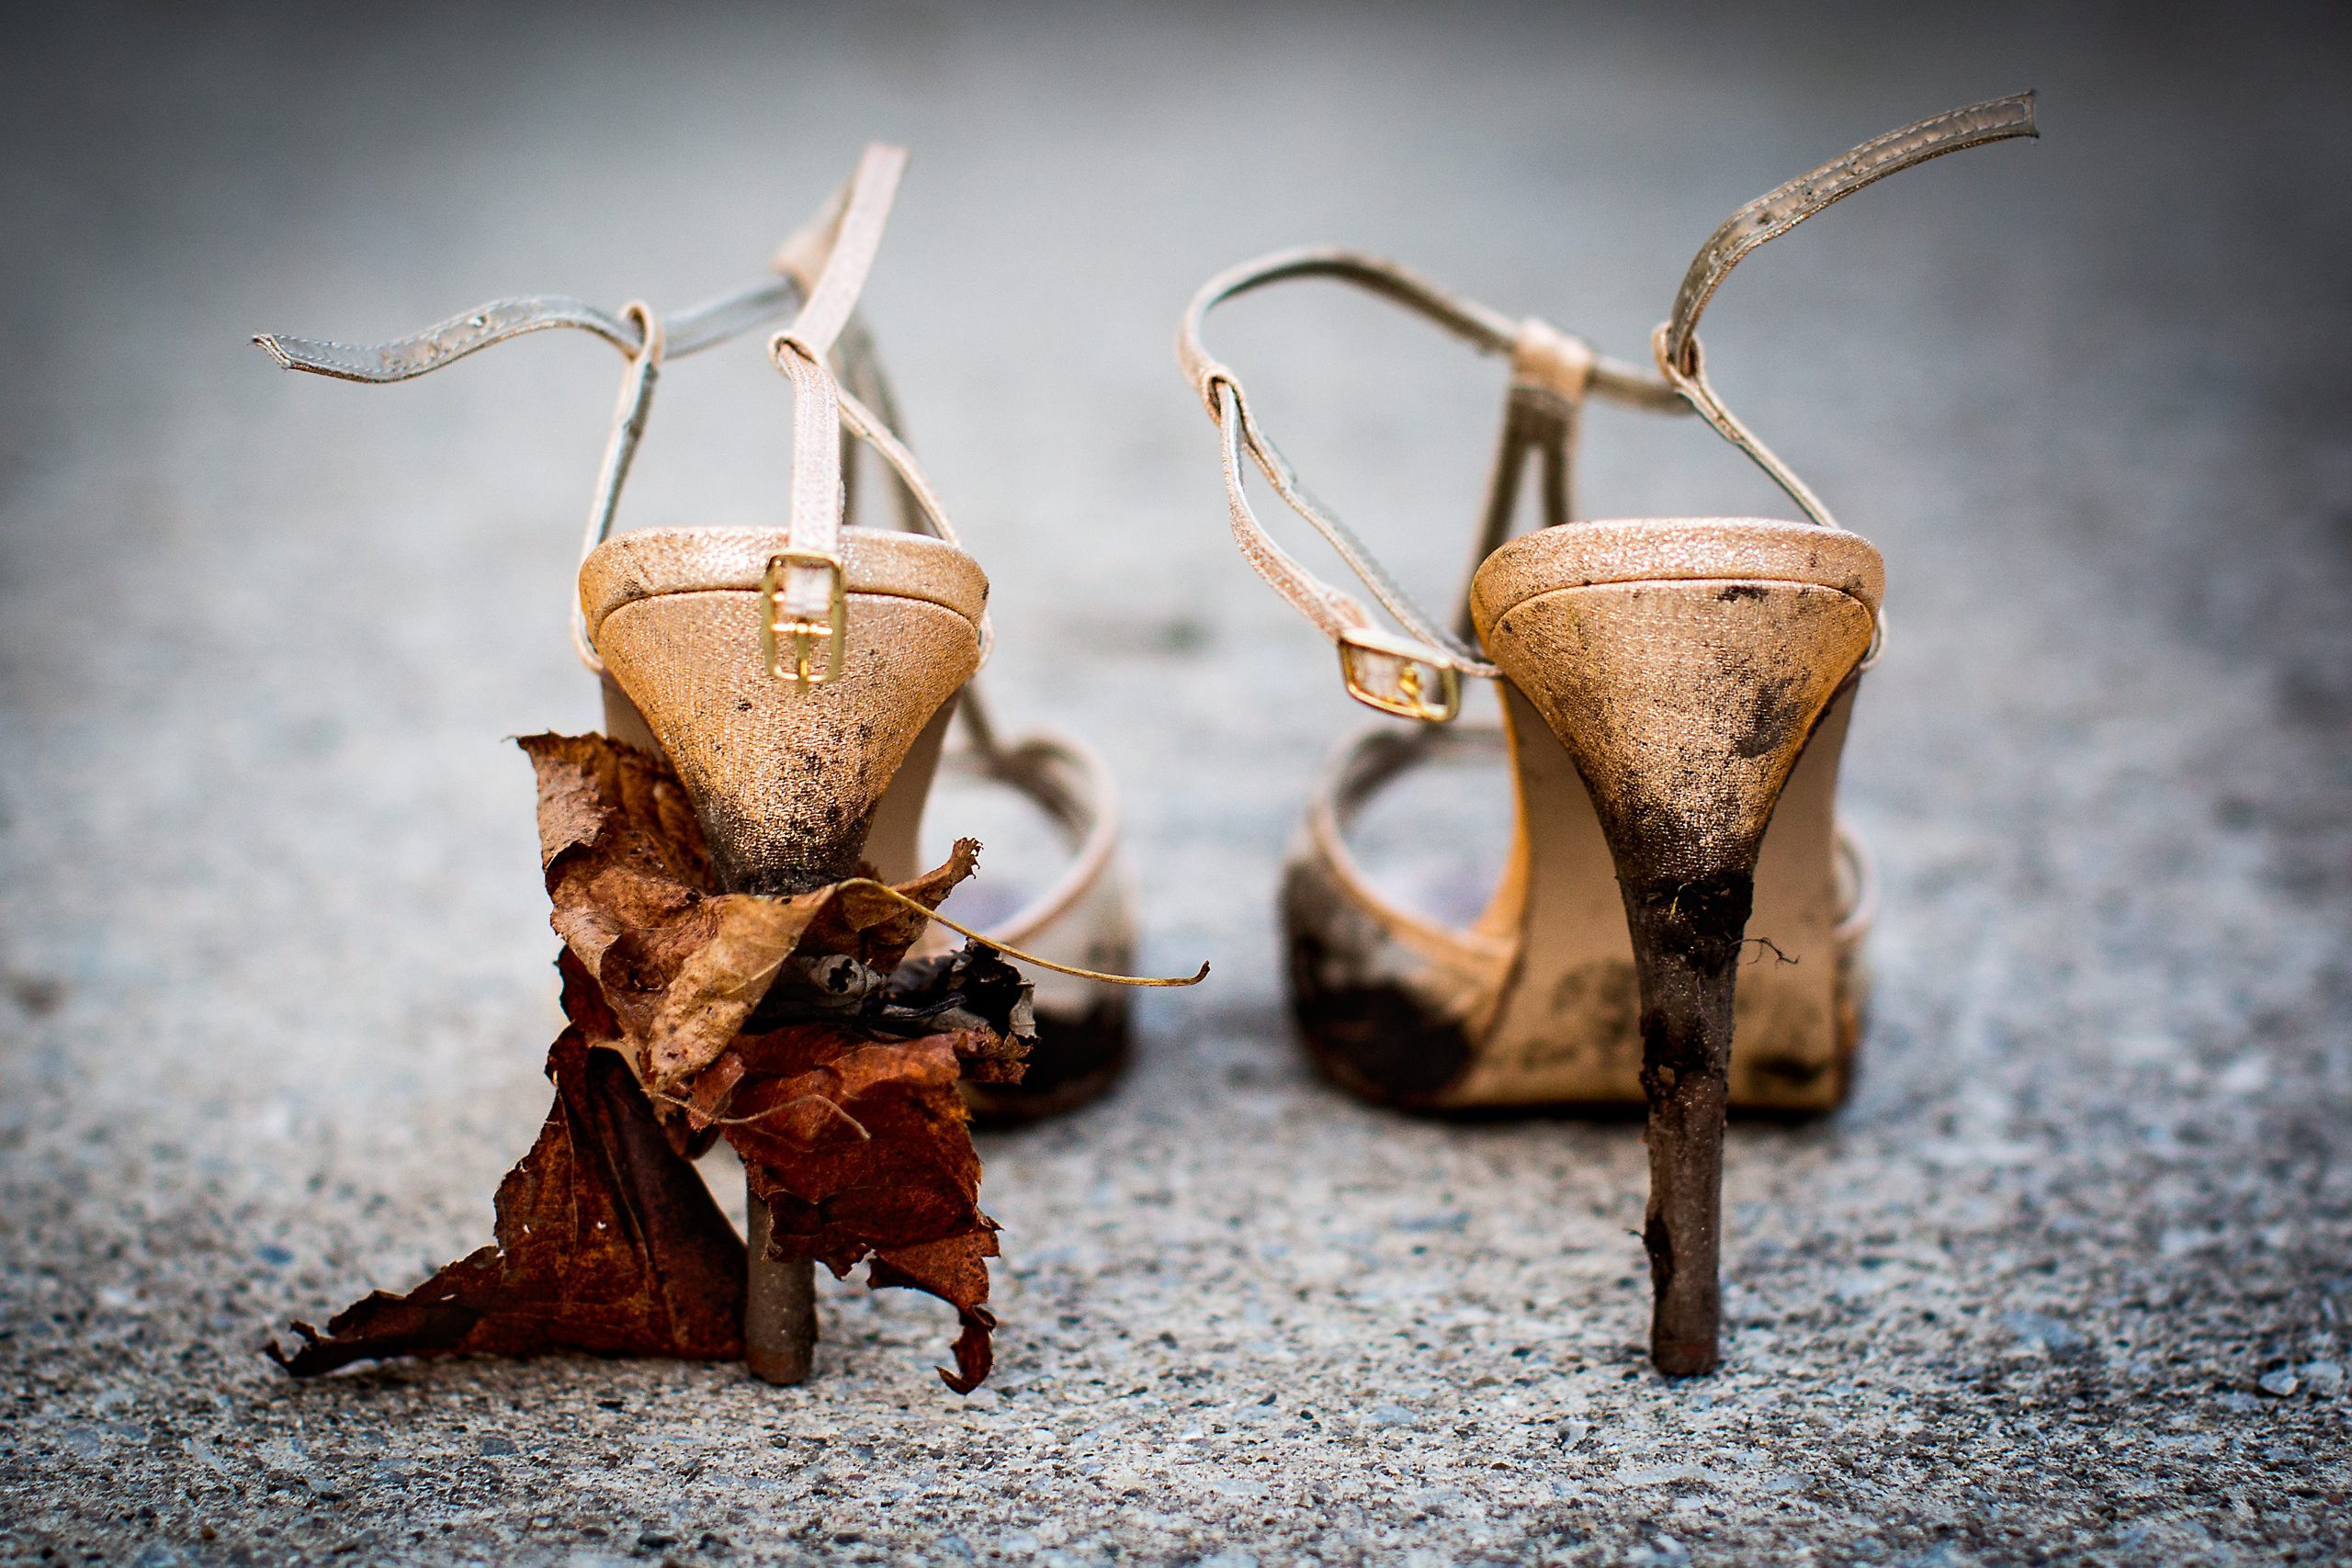 Muddy high heels with leaves stuck to heel